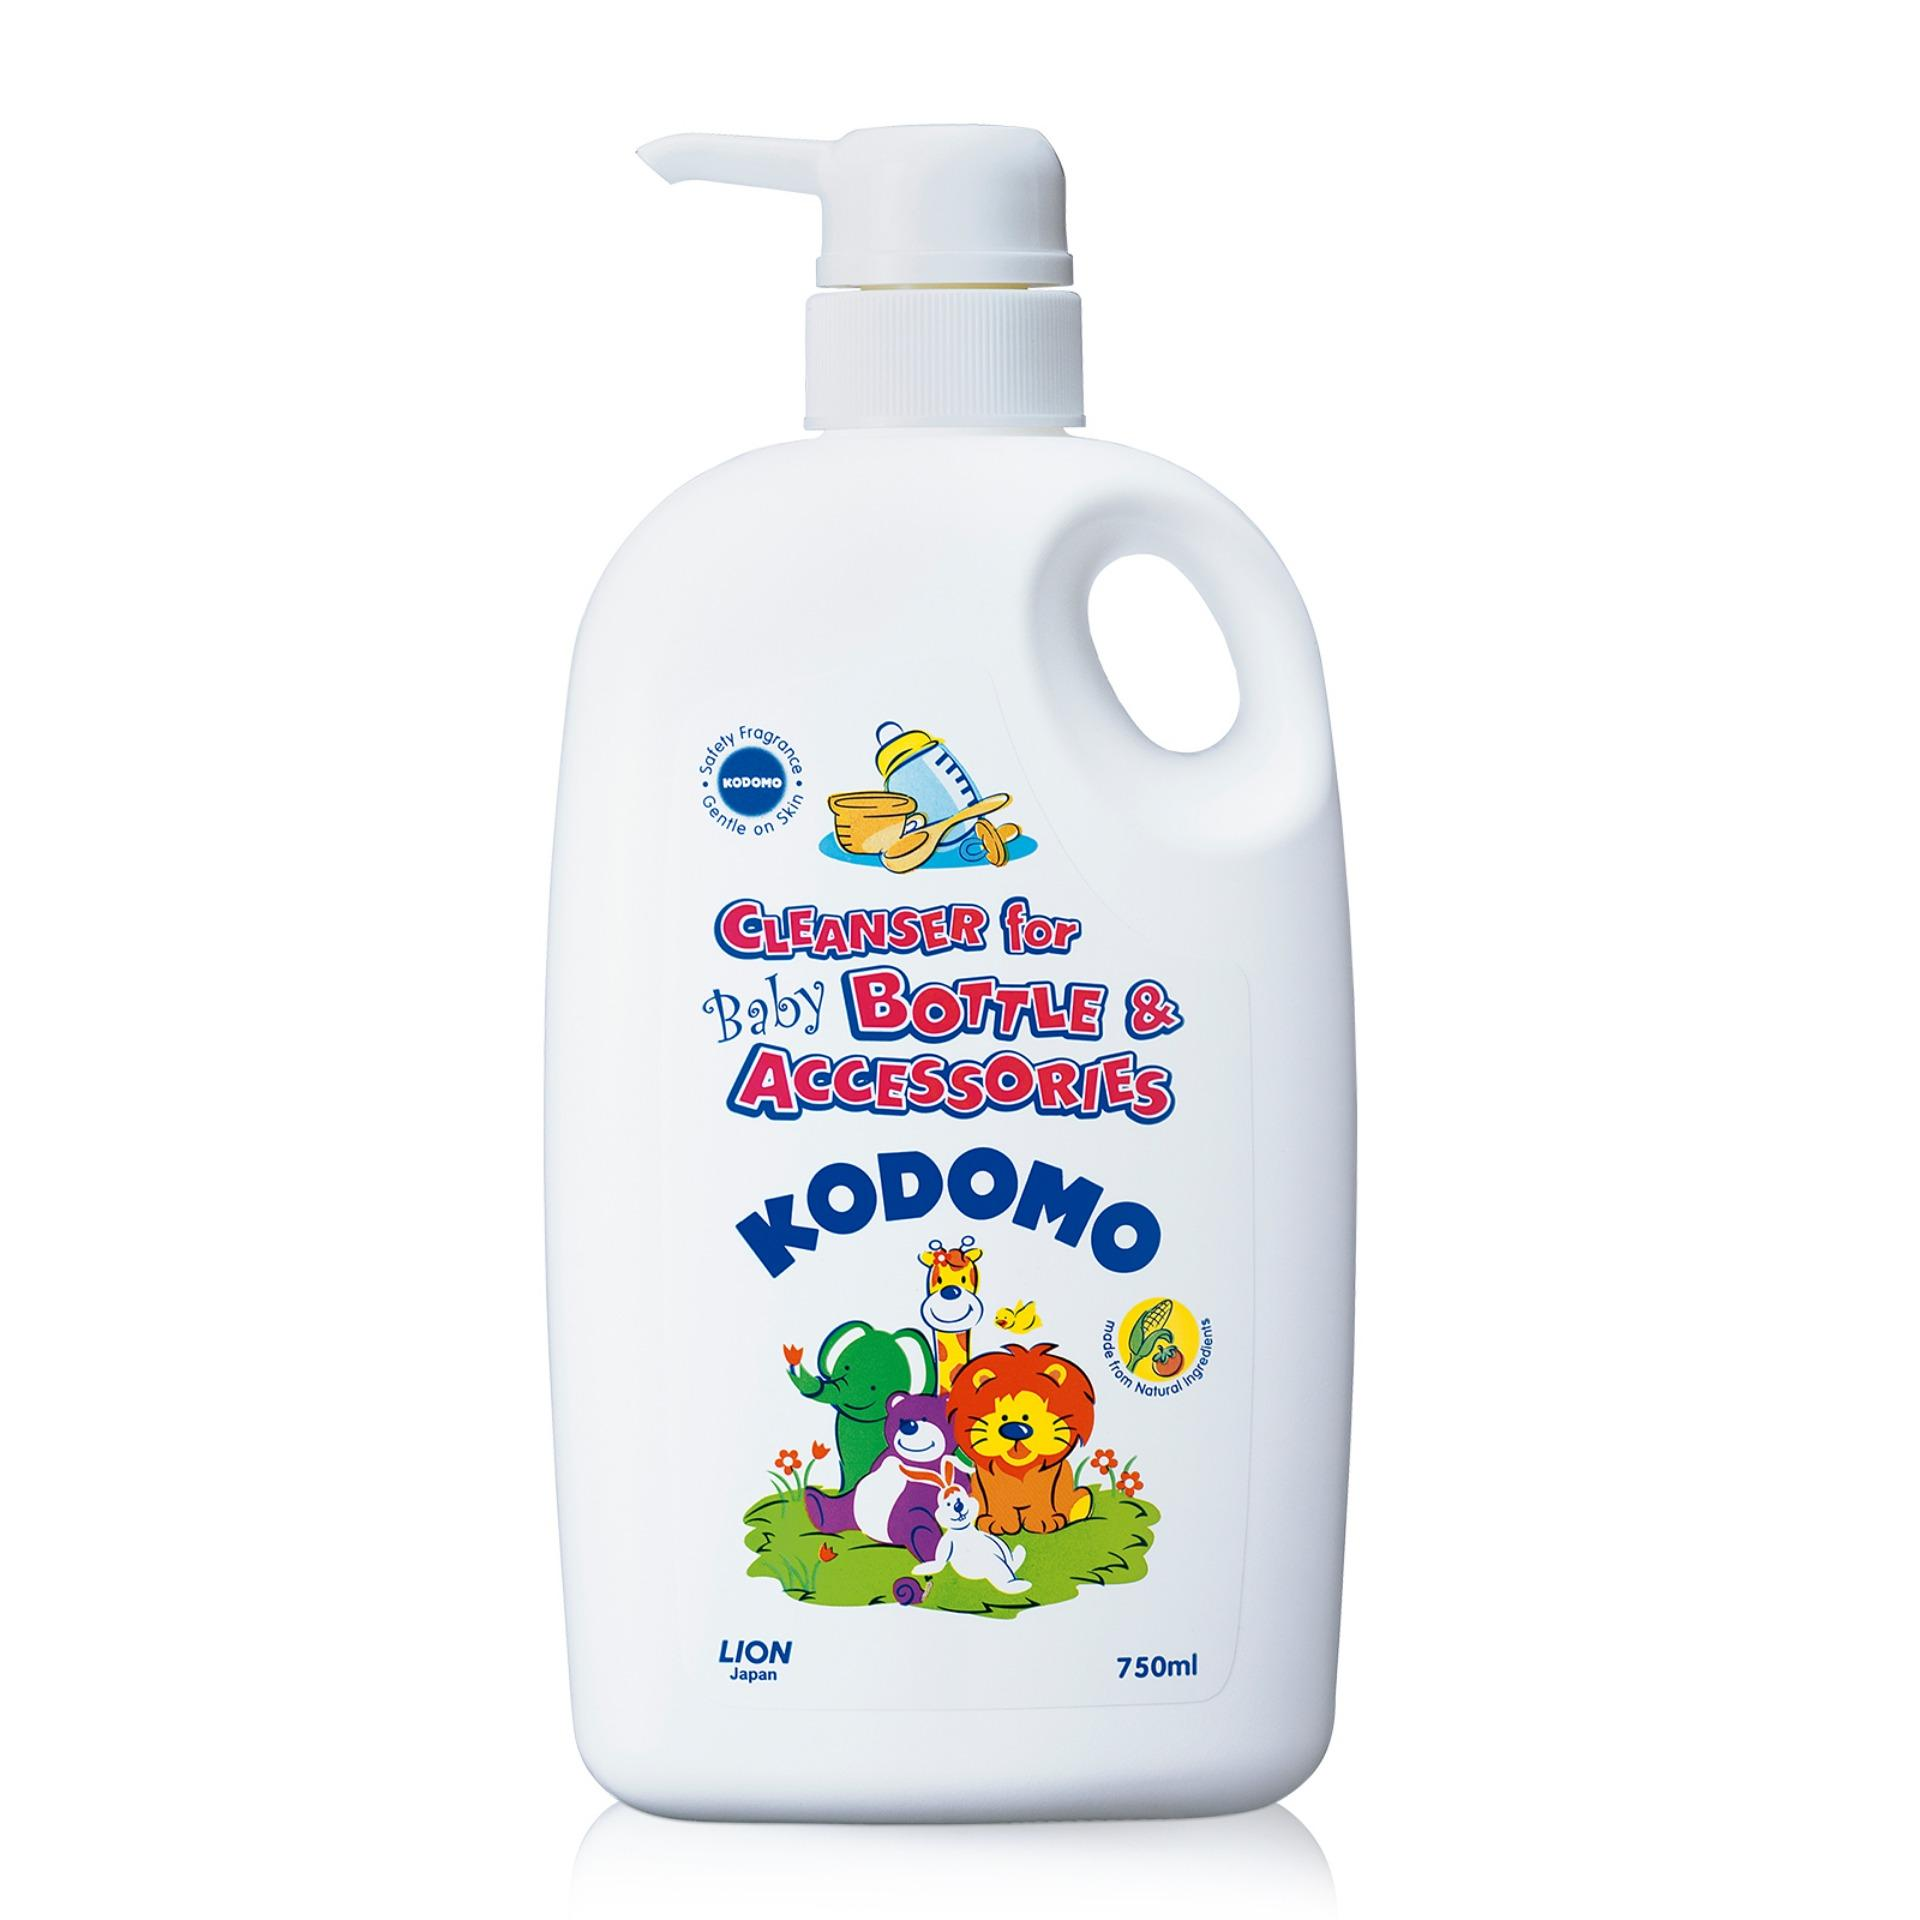 Kodomo Cleanser For Baby Bottle & Accessories 750ml By Lion Sg.